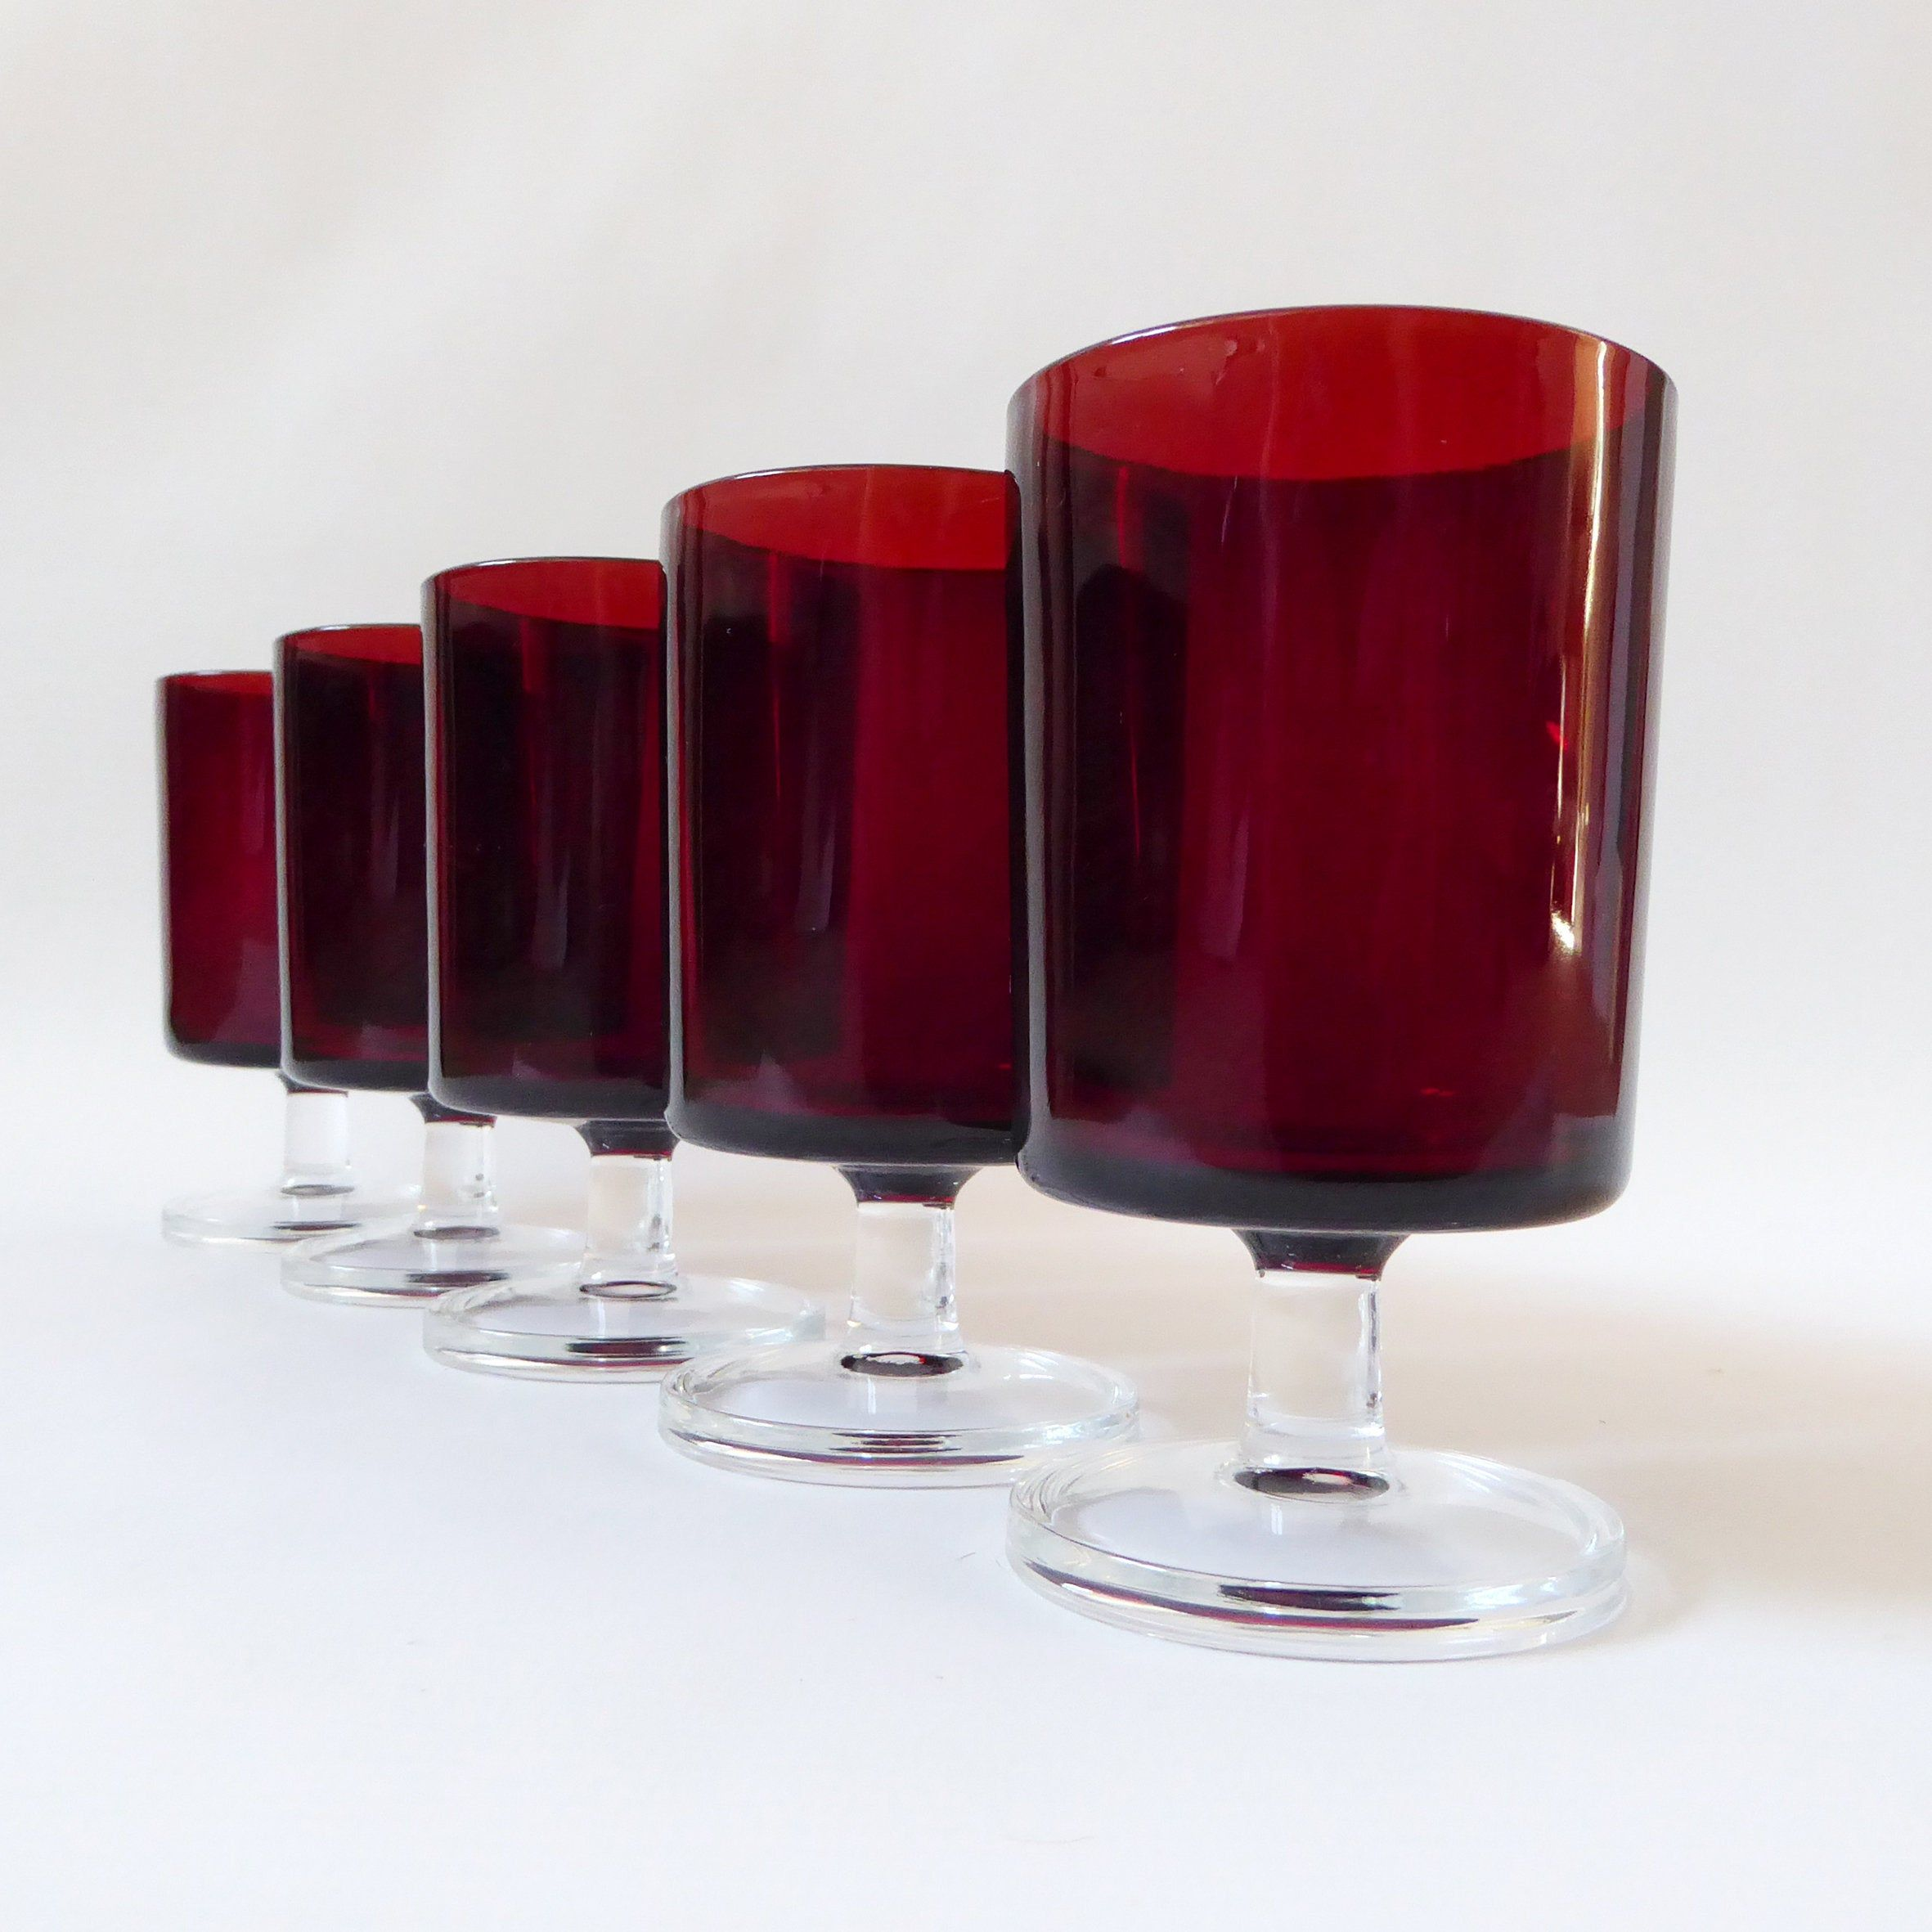 5 Vintage Luminarc Cavalier Red Wine Glasses 11 5cm Or 200ml Etsy In 2020 Vintage Wine Glasses Red Wine Glasses Wine Glass Sizes